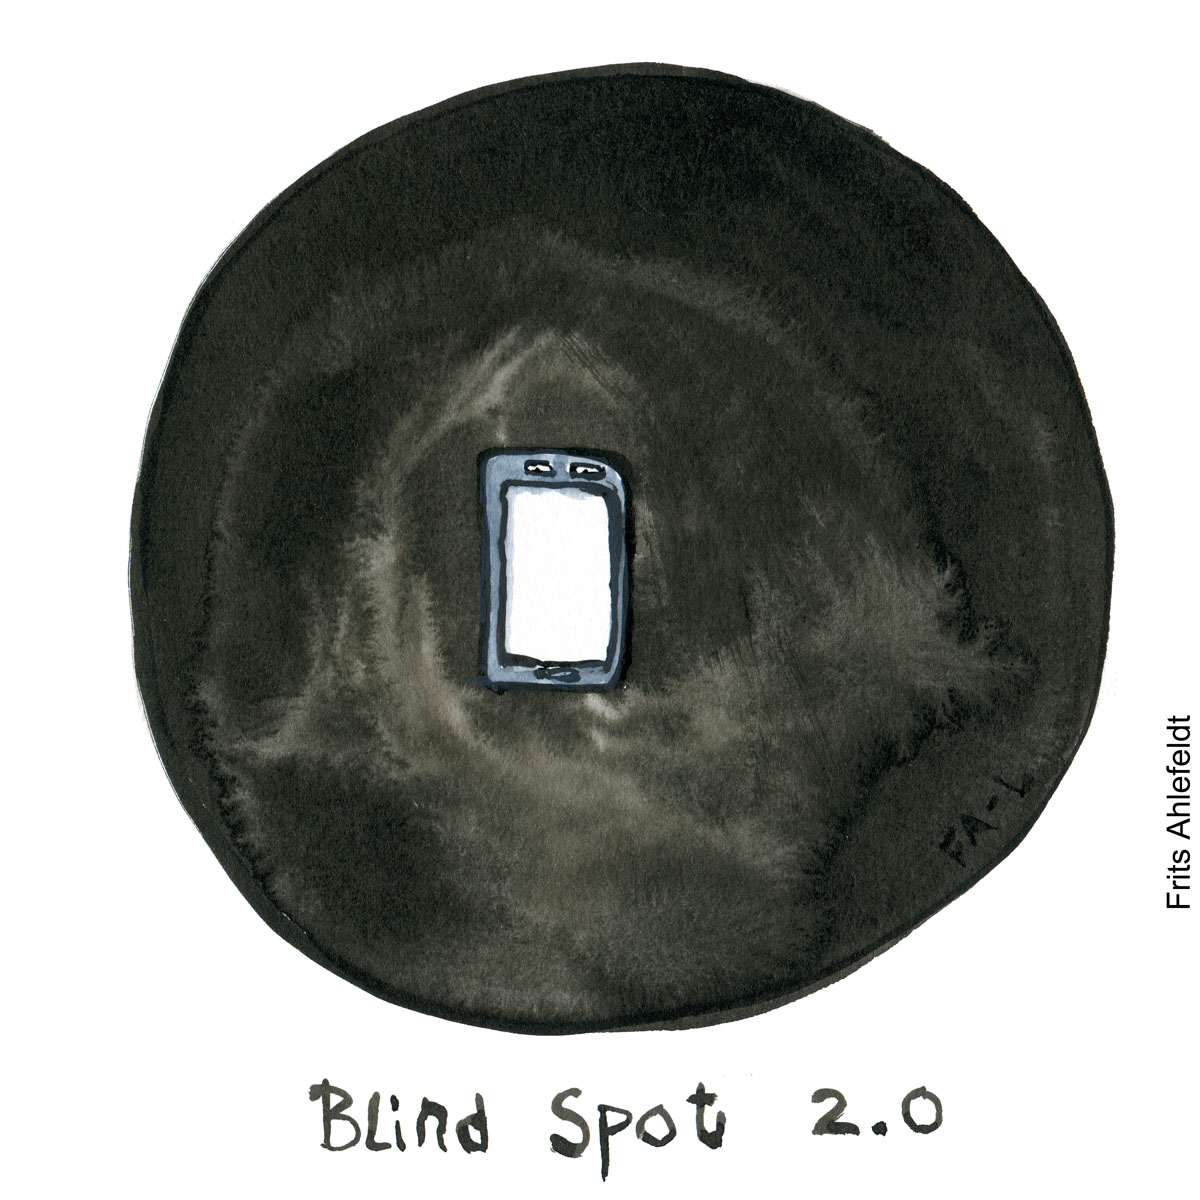 Illustration-of a phone in a blind spot-drawing - drawn journalism by Frits Ahlefeldt